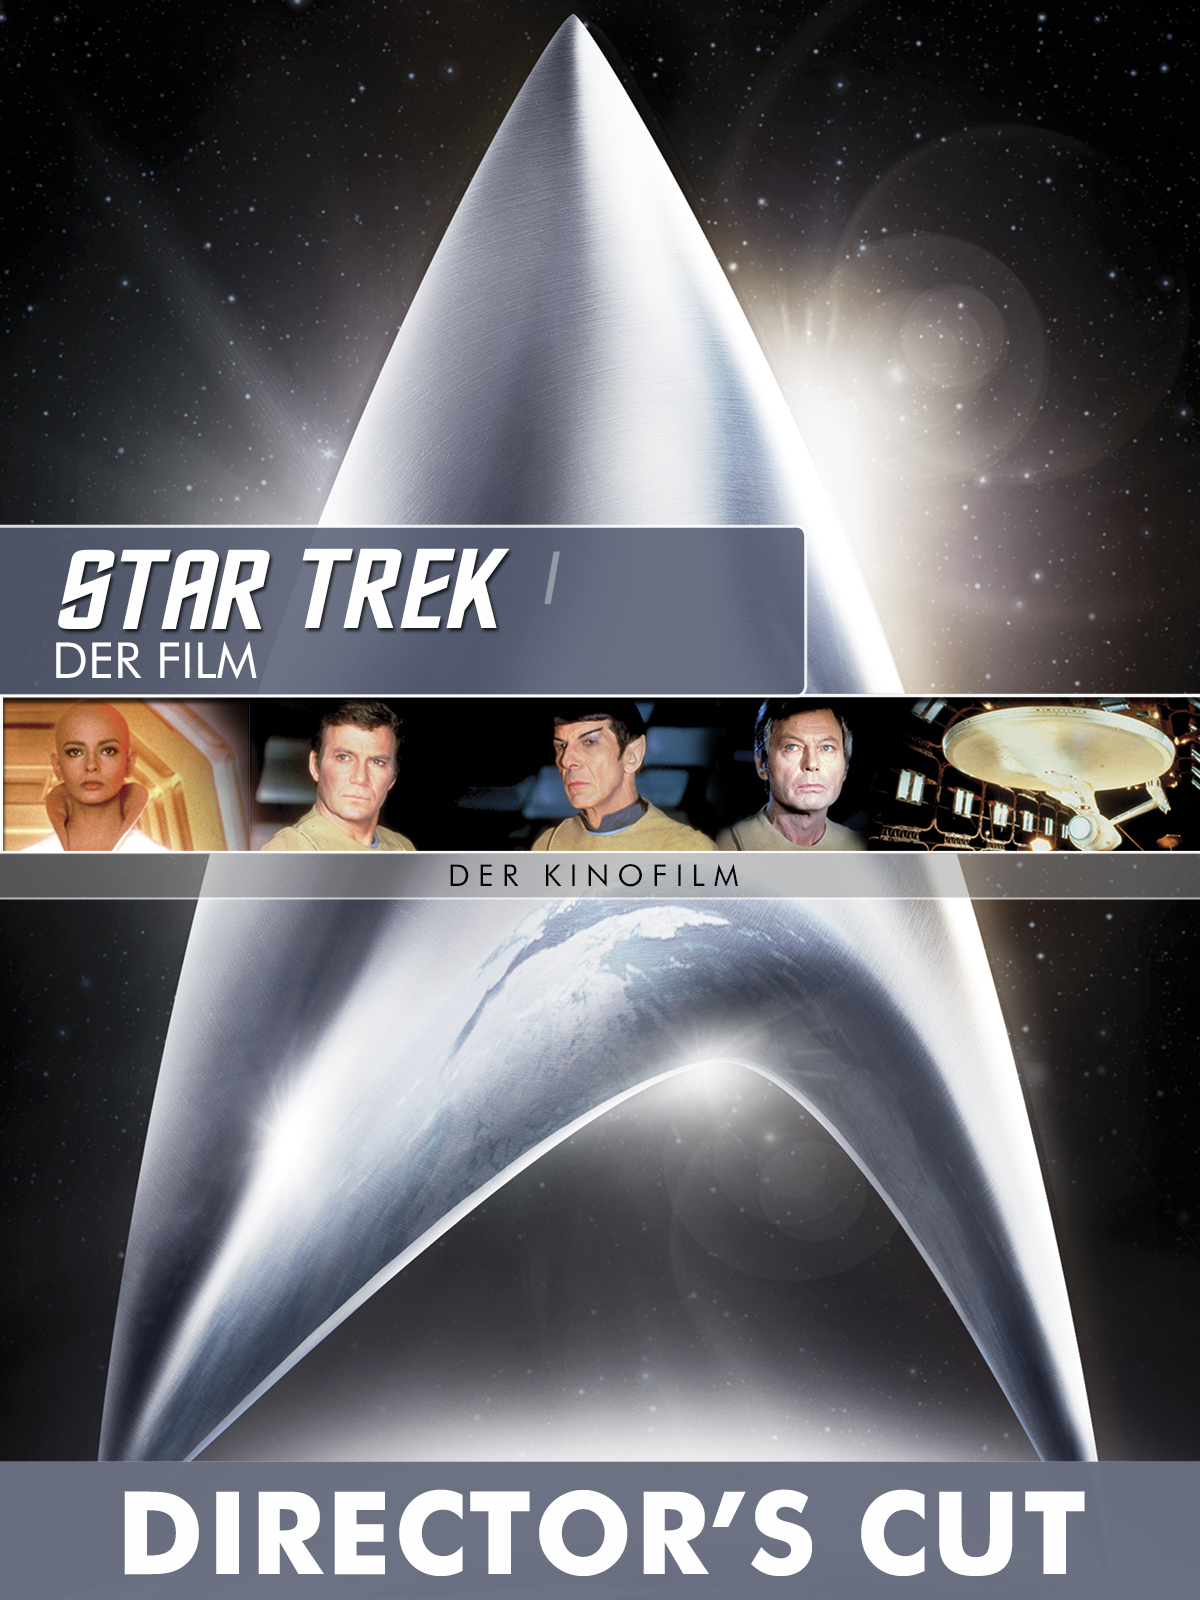 Star Trek I stream